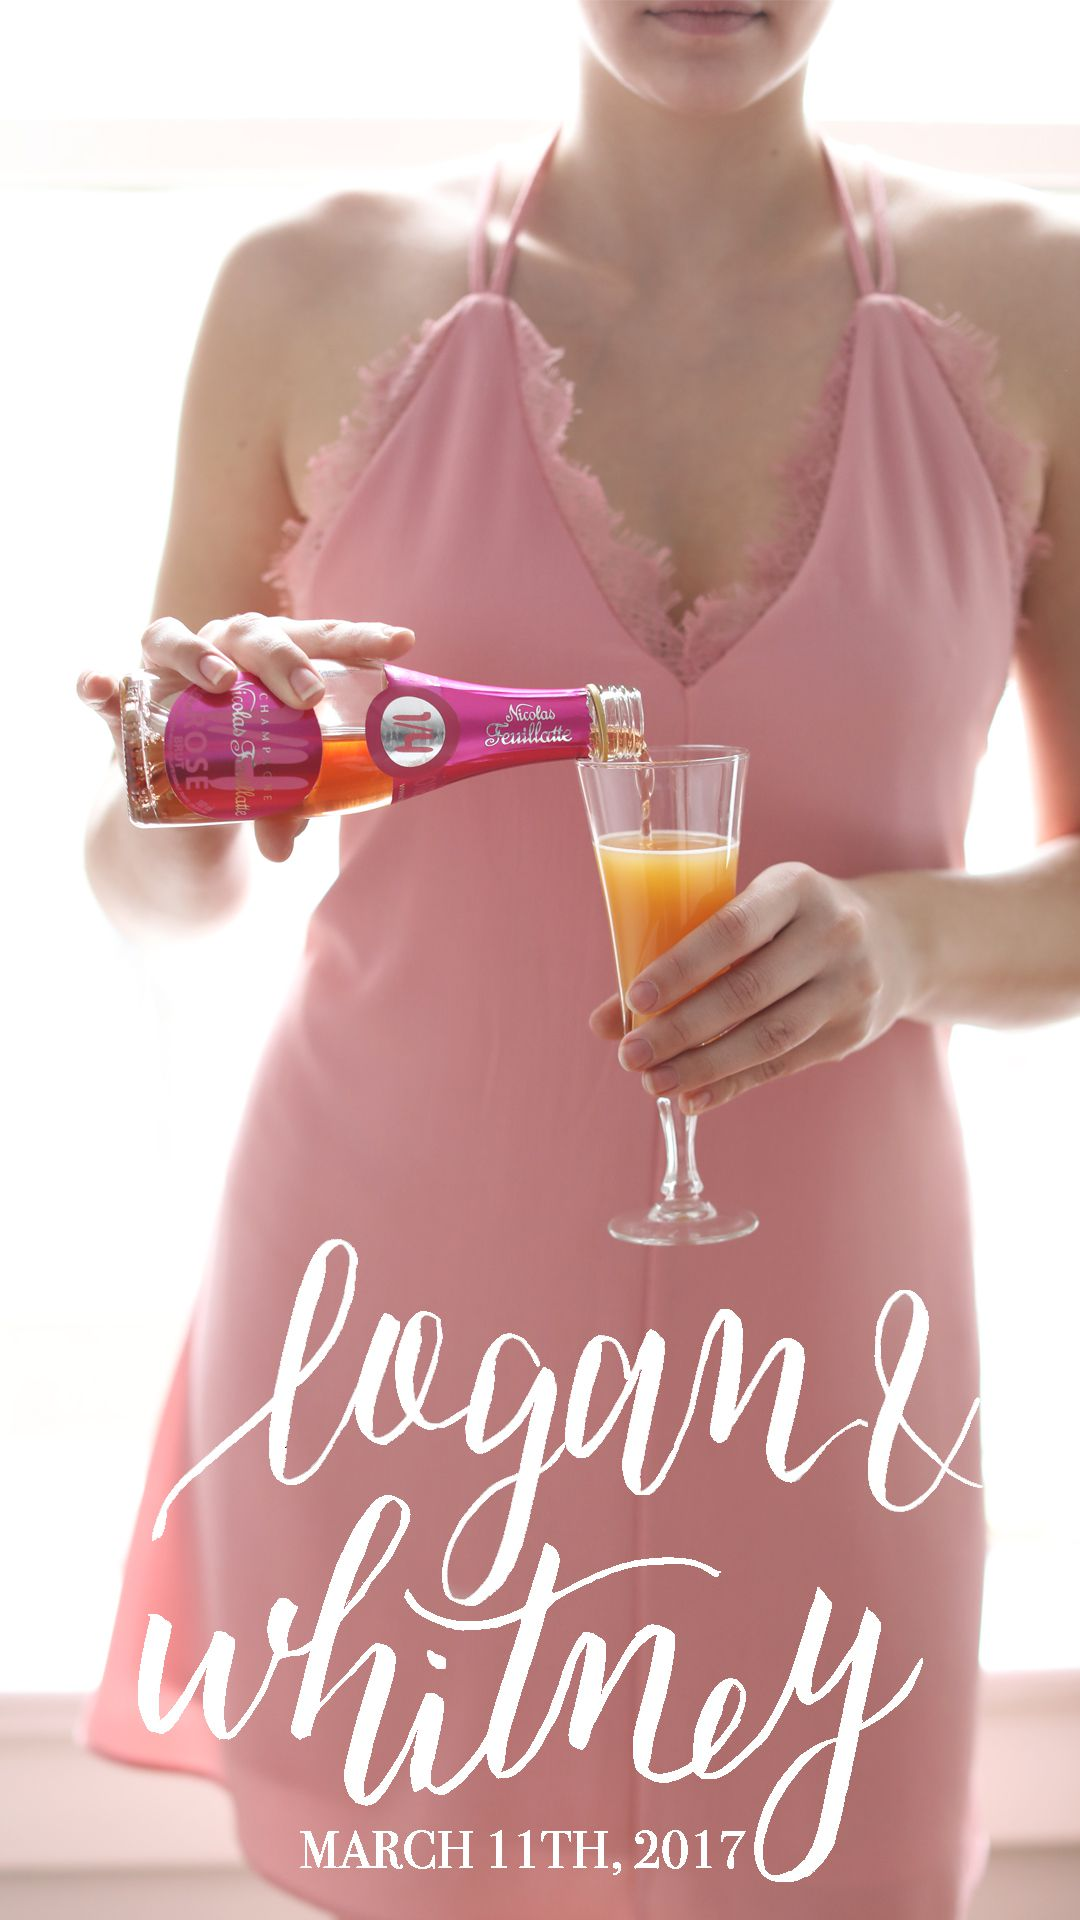 A woman in a pink dress pouring a drink with a wedding filter overlay